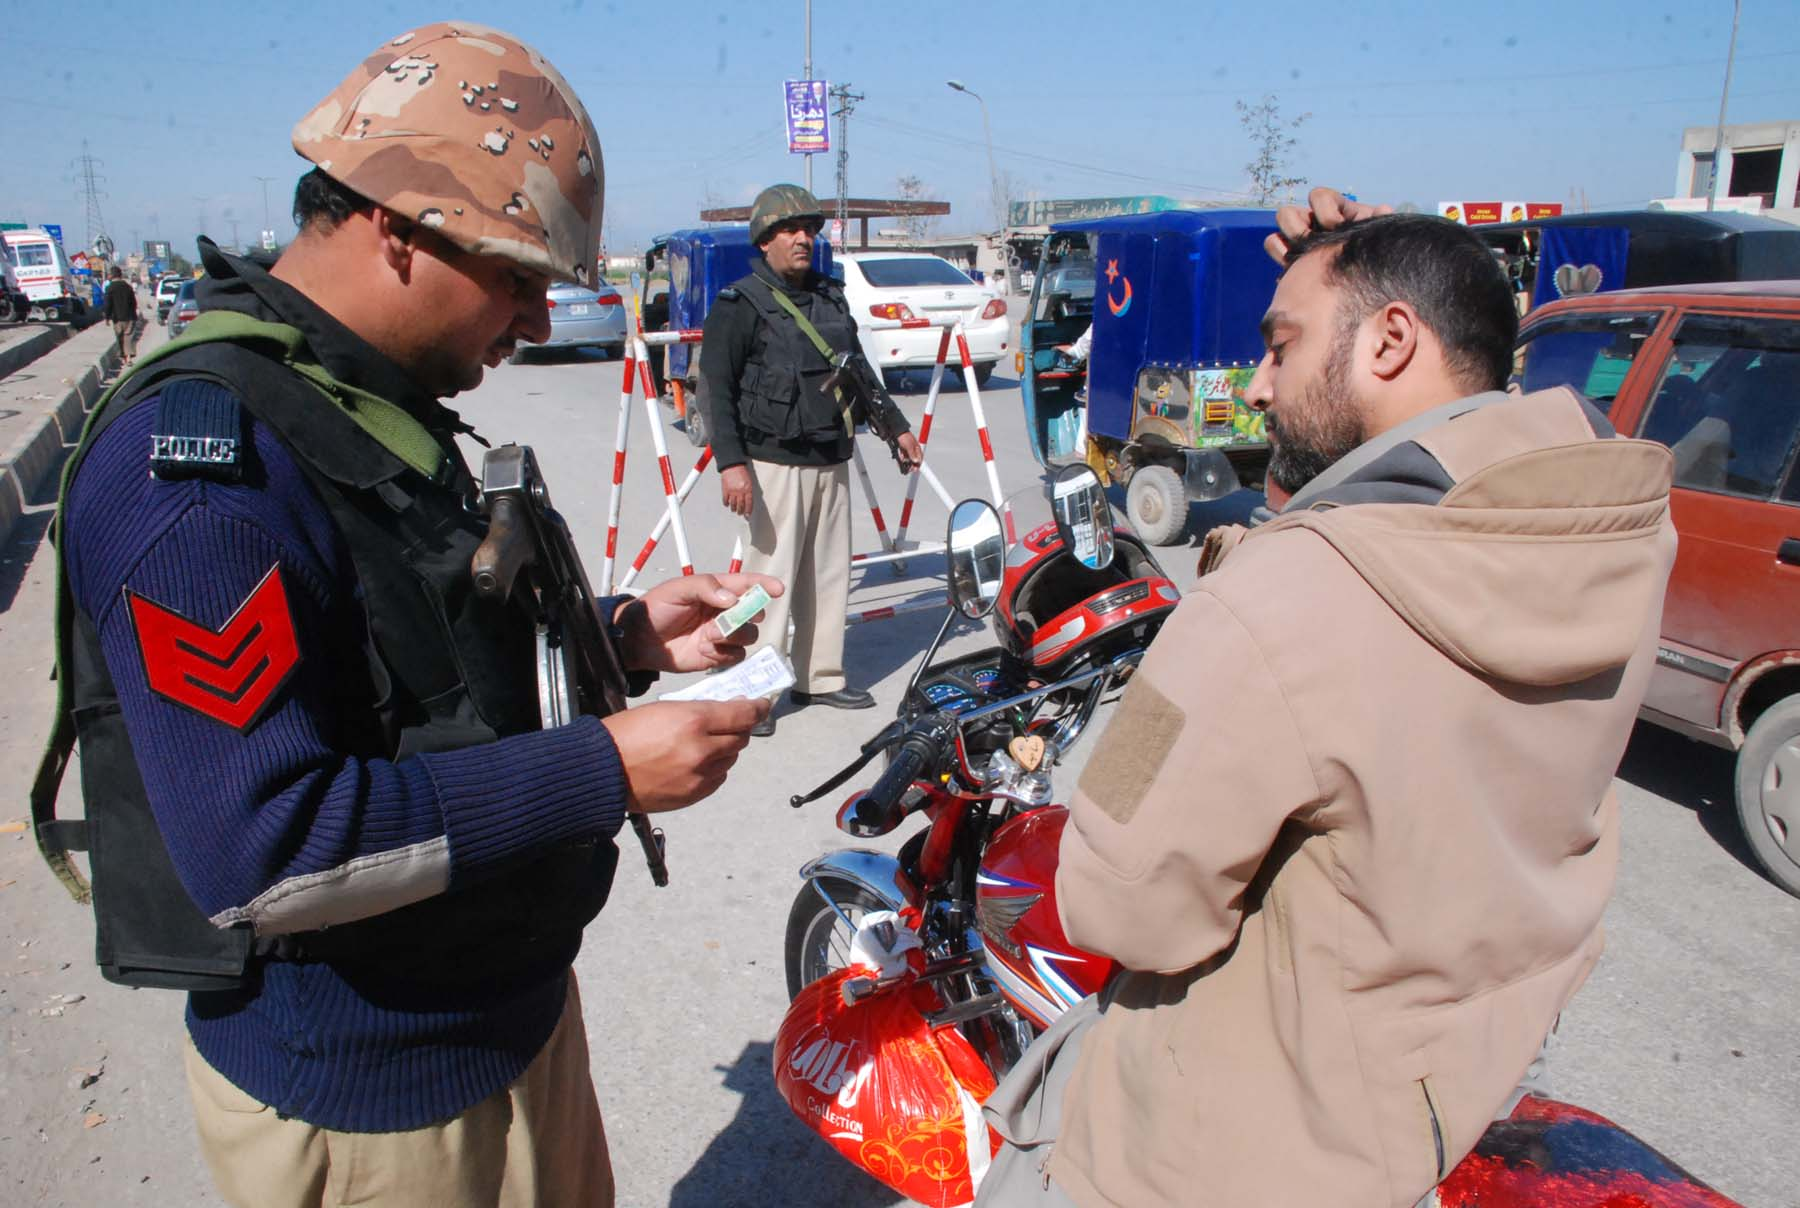 A police officer examines a motorcyclist's documents in Peshawar in February. [Adeel Saeed]